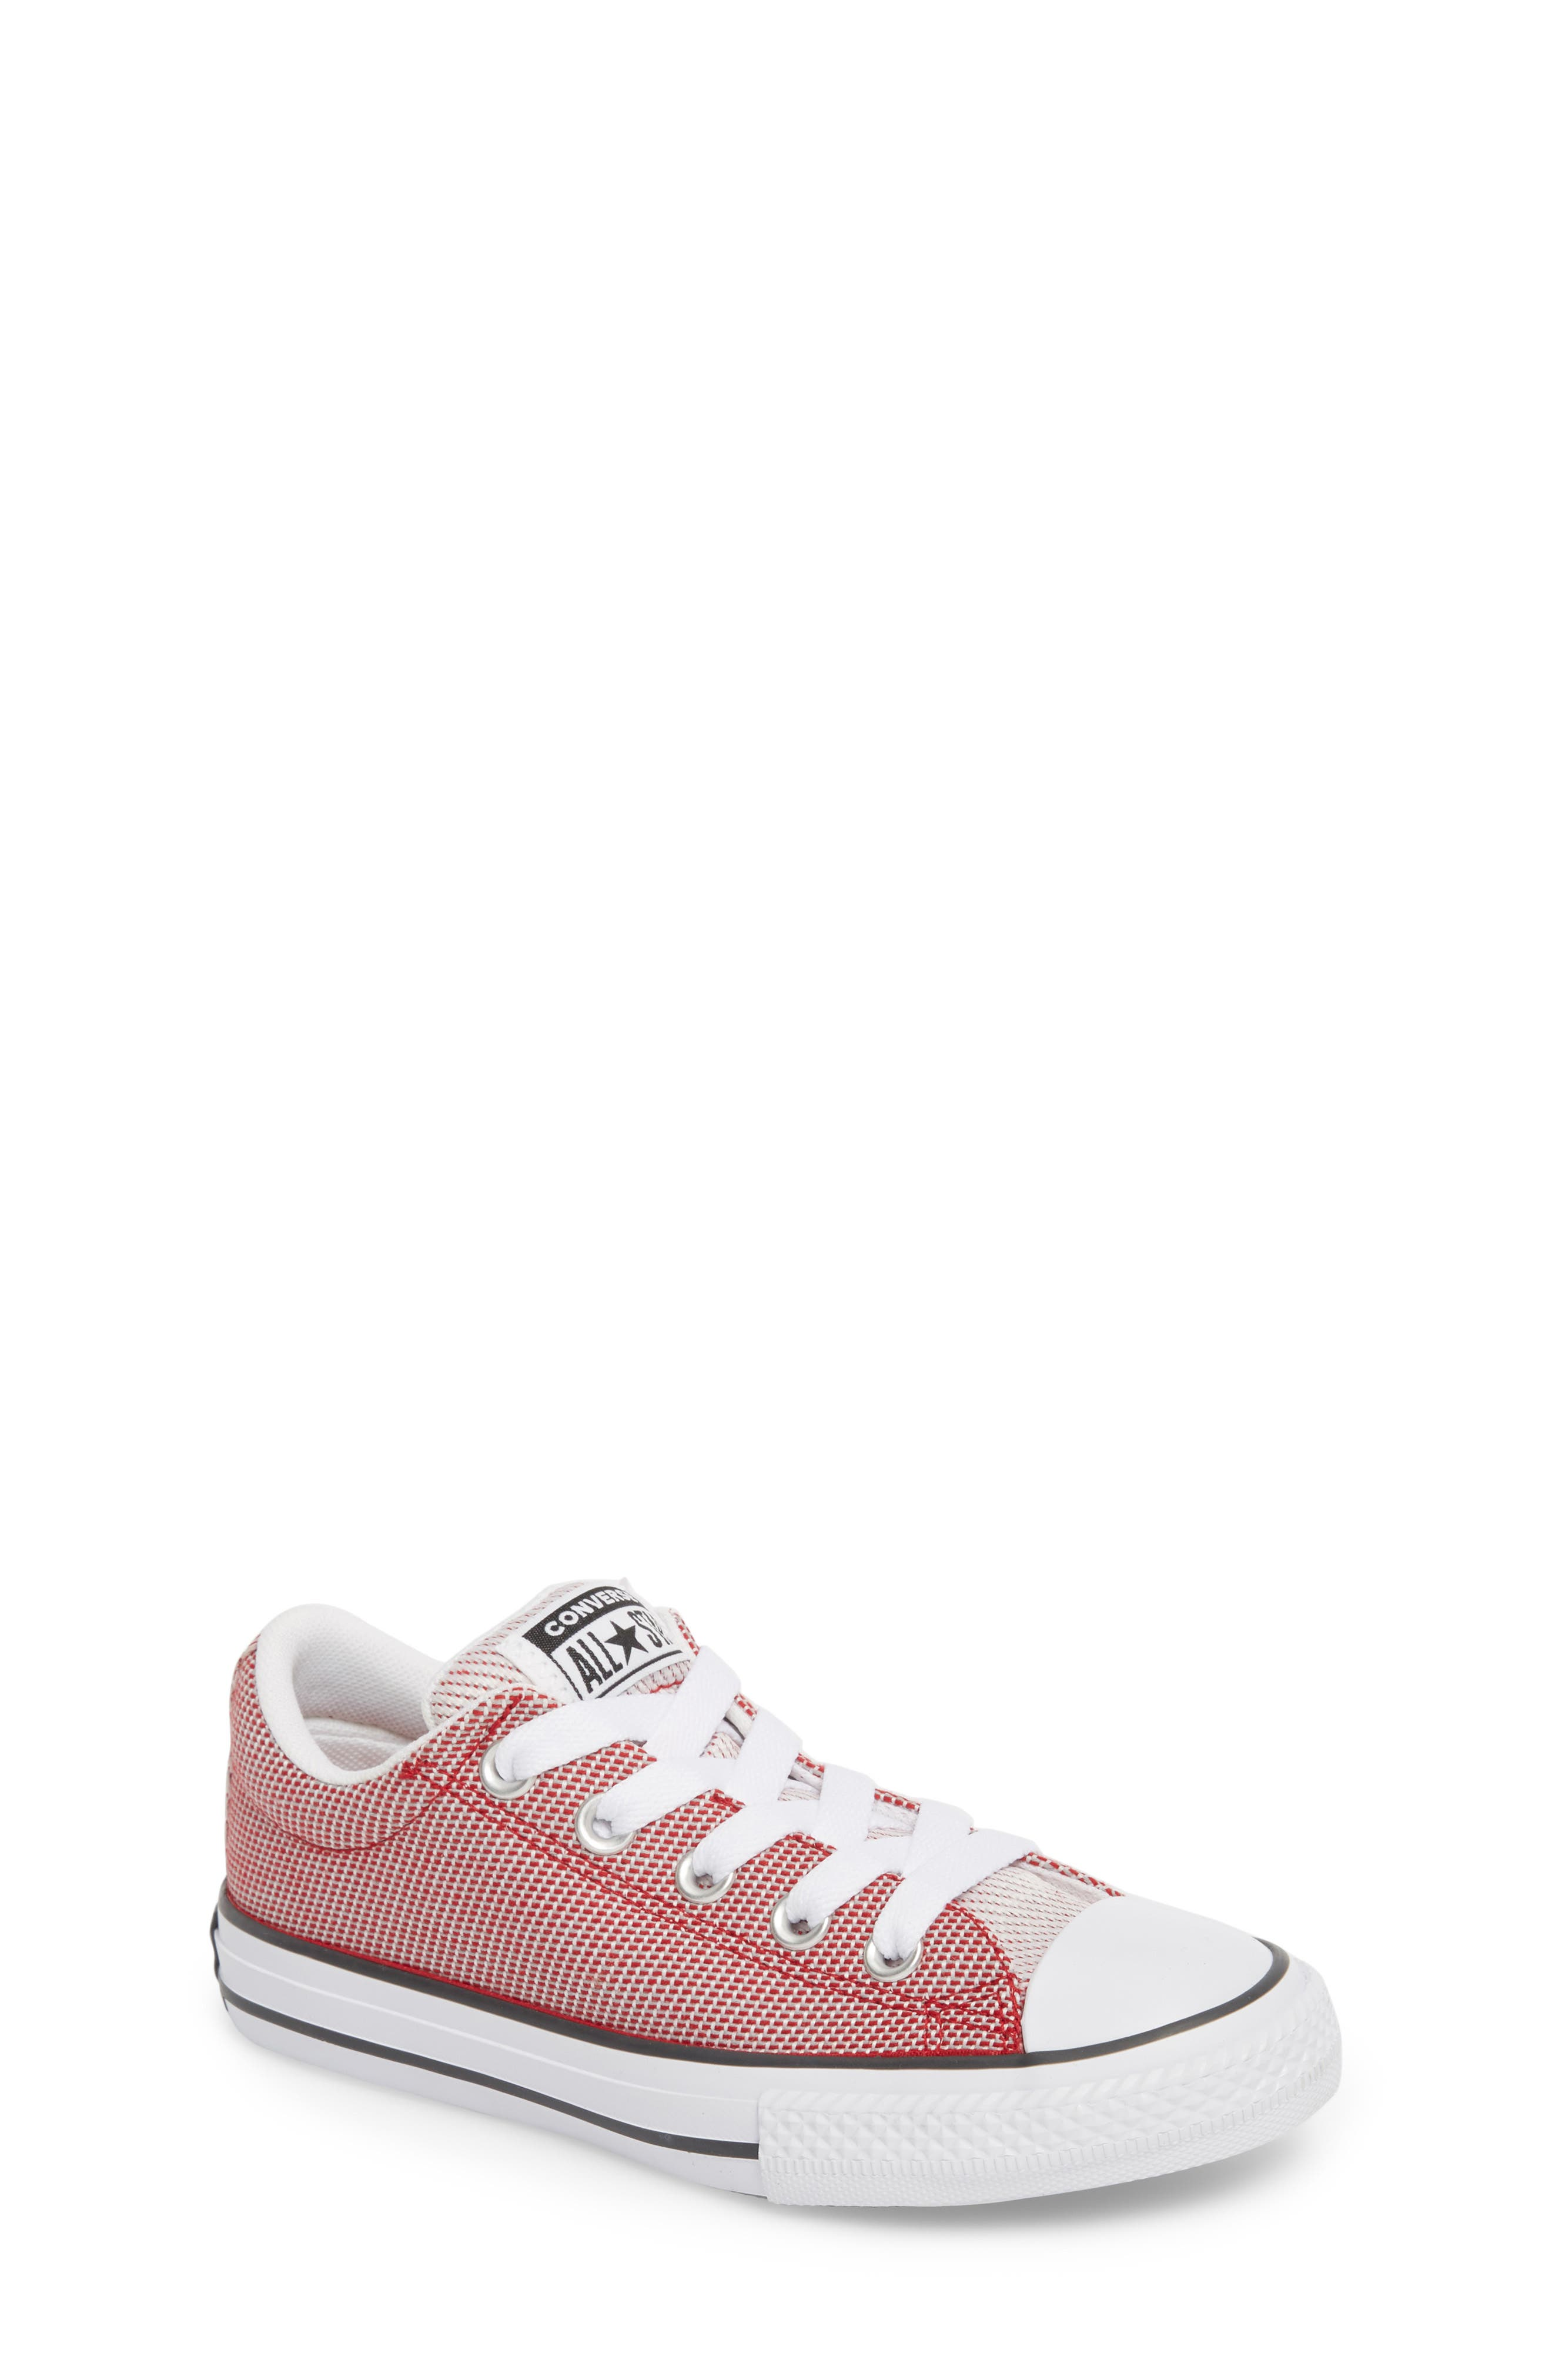 CONVERSE Chuck Taylor<sup>®</sup> All Star<sup>®</sup> Woven Street Sneaker, Main, color, 600